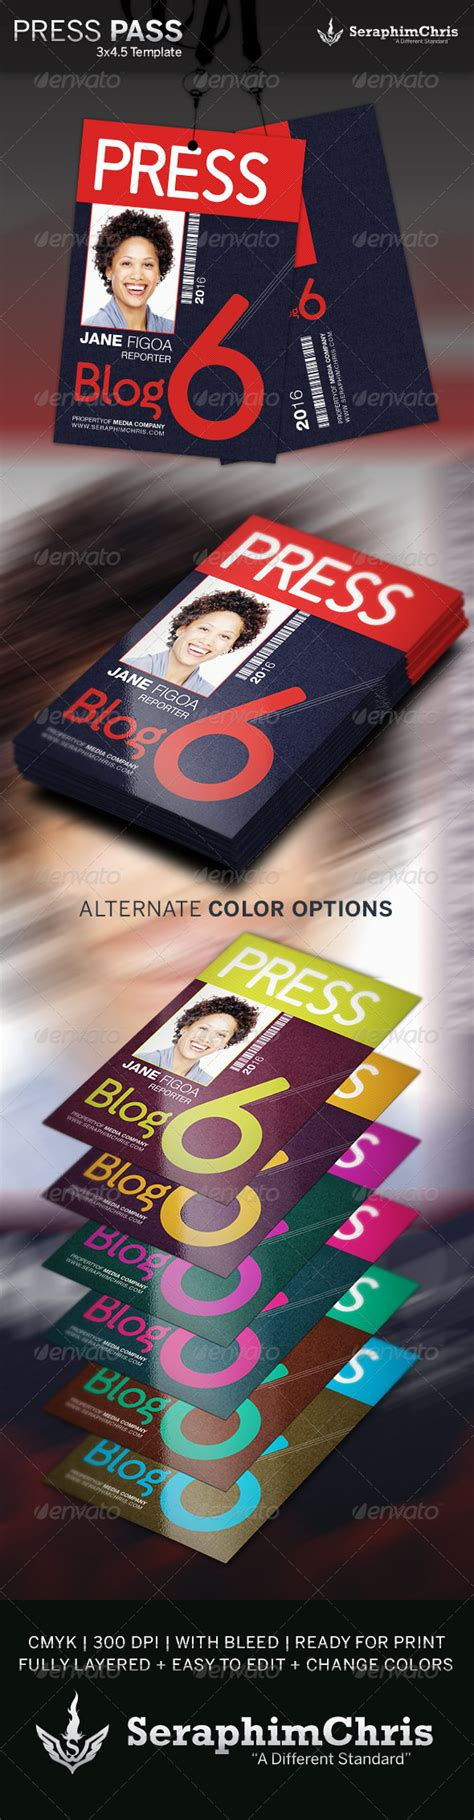 Press Pass Template 2 By Seraphimchris Graphicriver Media Pass Template Photoshop